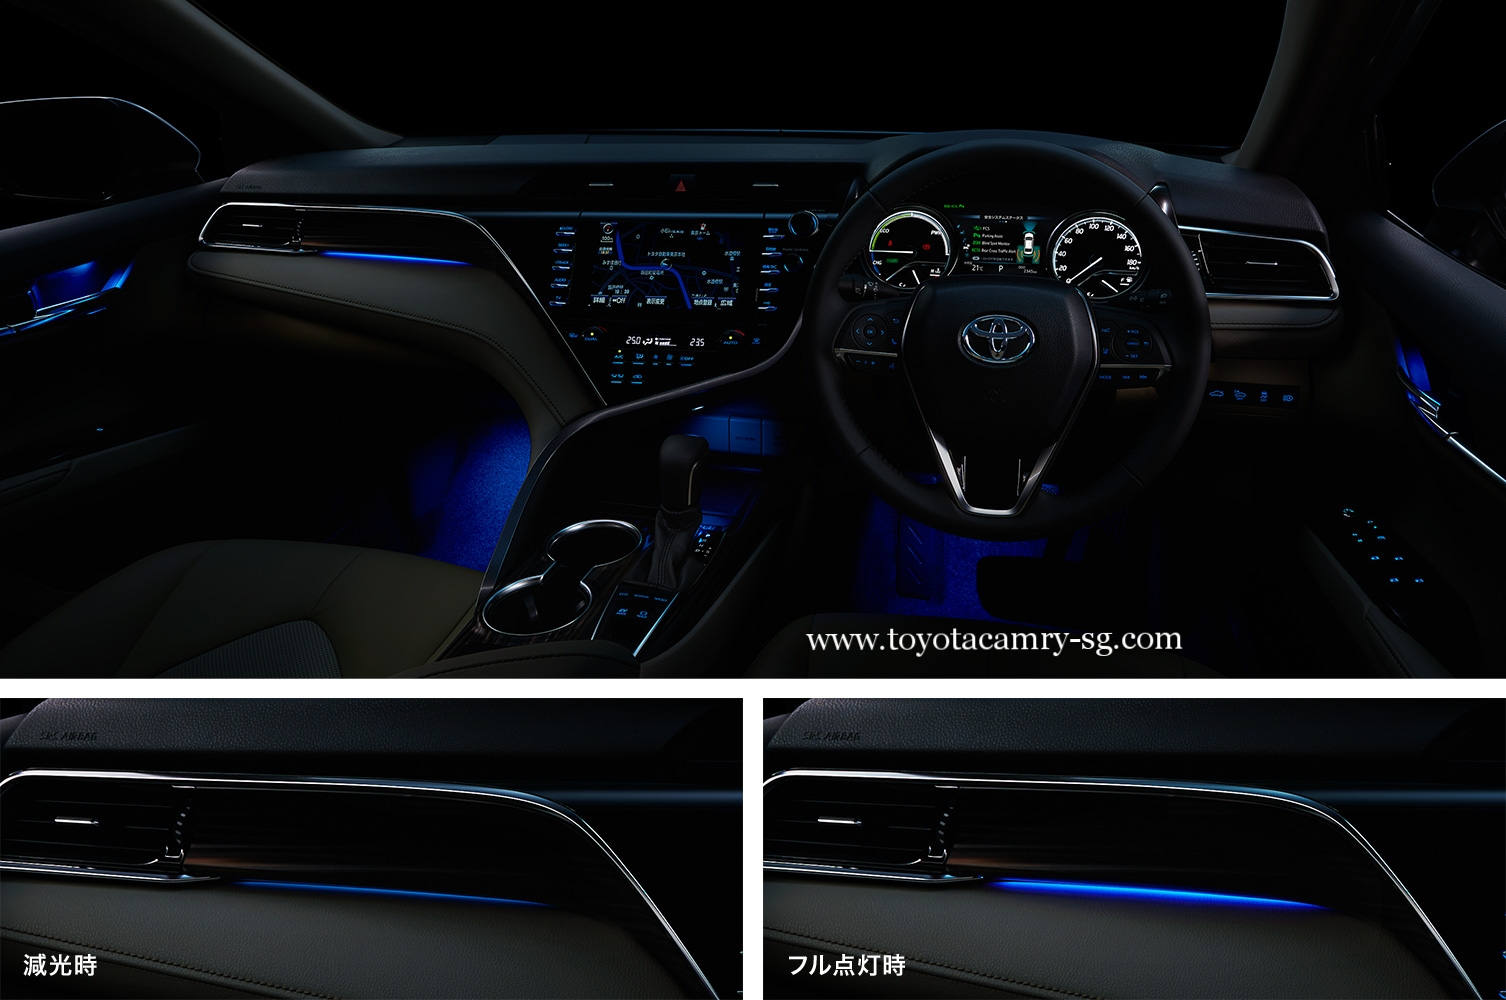 all new camry 2018 interior brand 2017 price toyota hybrid 2019 30yrs anniversary package luxury richness illuminated entry system is adopted in where a